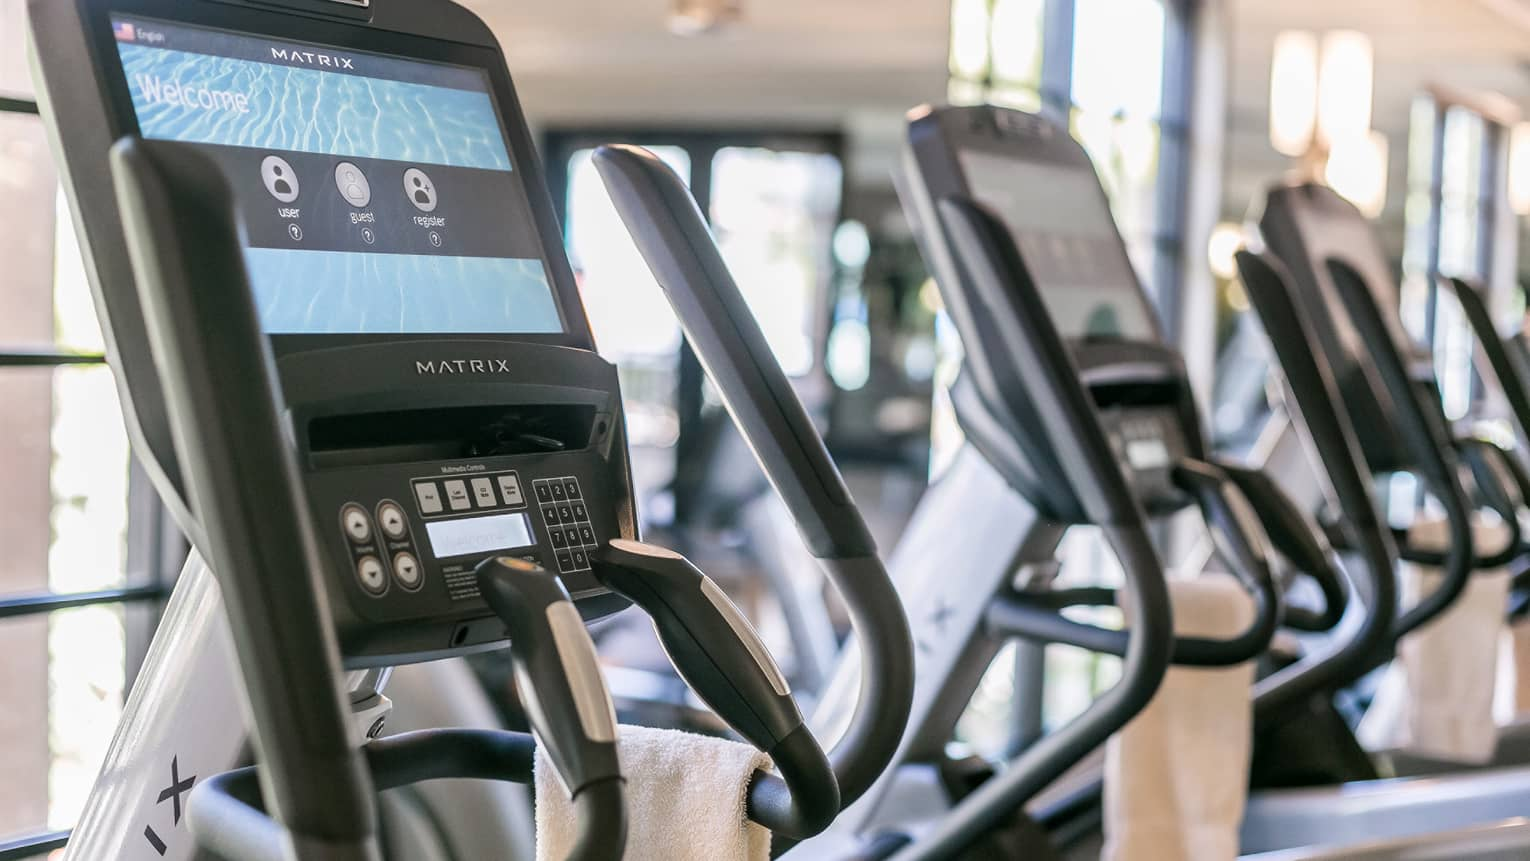 Close-up of Matrix cardio machine screens and handles in a row